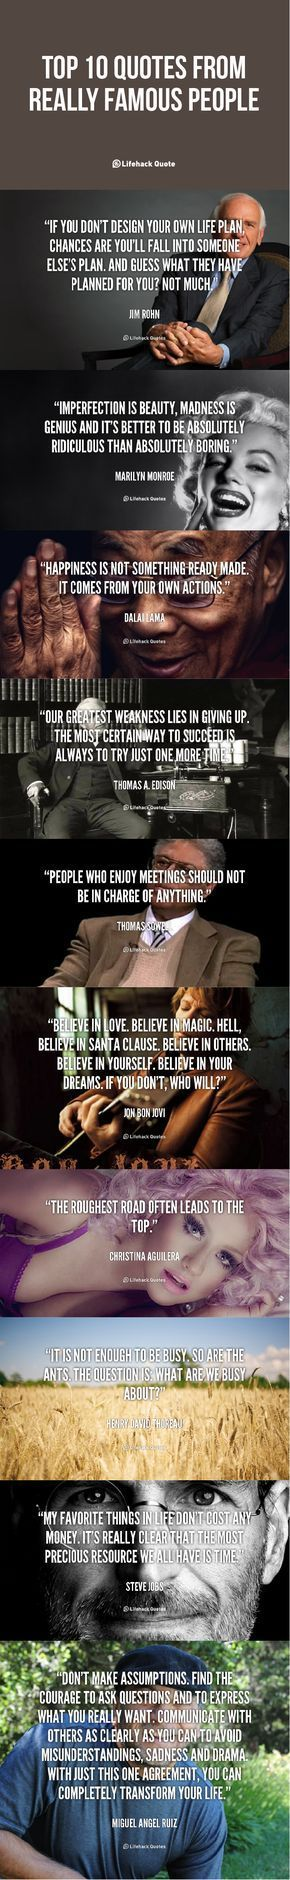 celebrity quotes : This List of Quotes from Famous People Will Inspire Your Life... - The Love Quotes | Looking for Love Quotes ? Top rated Quotes Magazine & repository, we provide you with top quotes from around the world